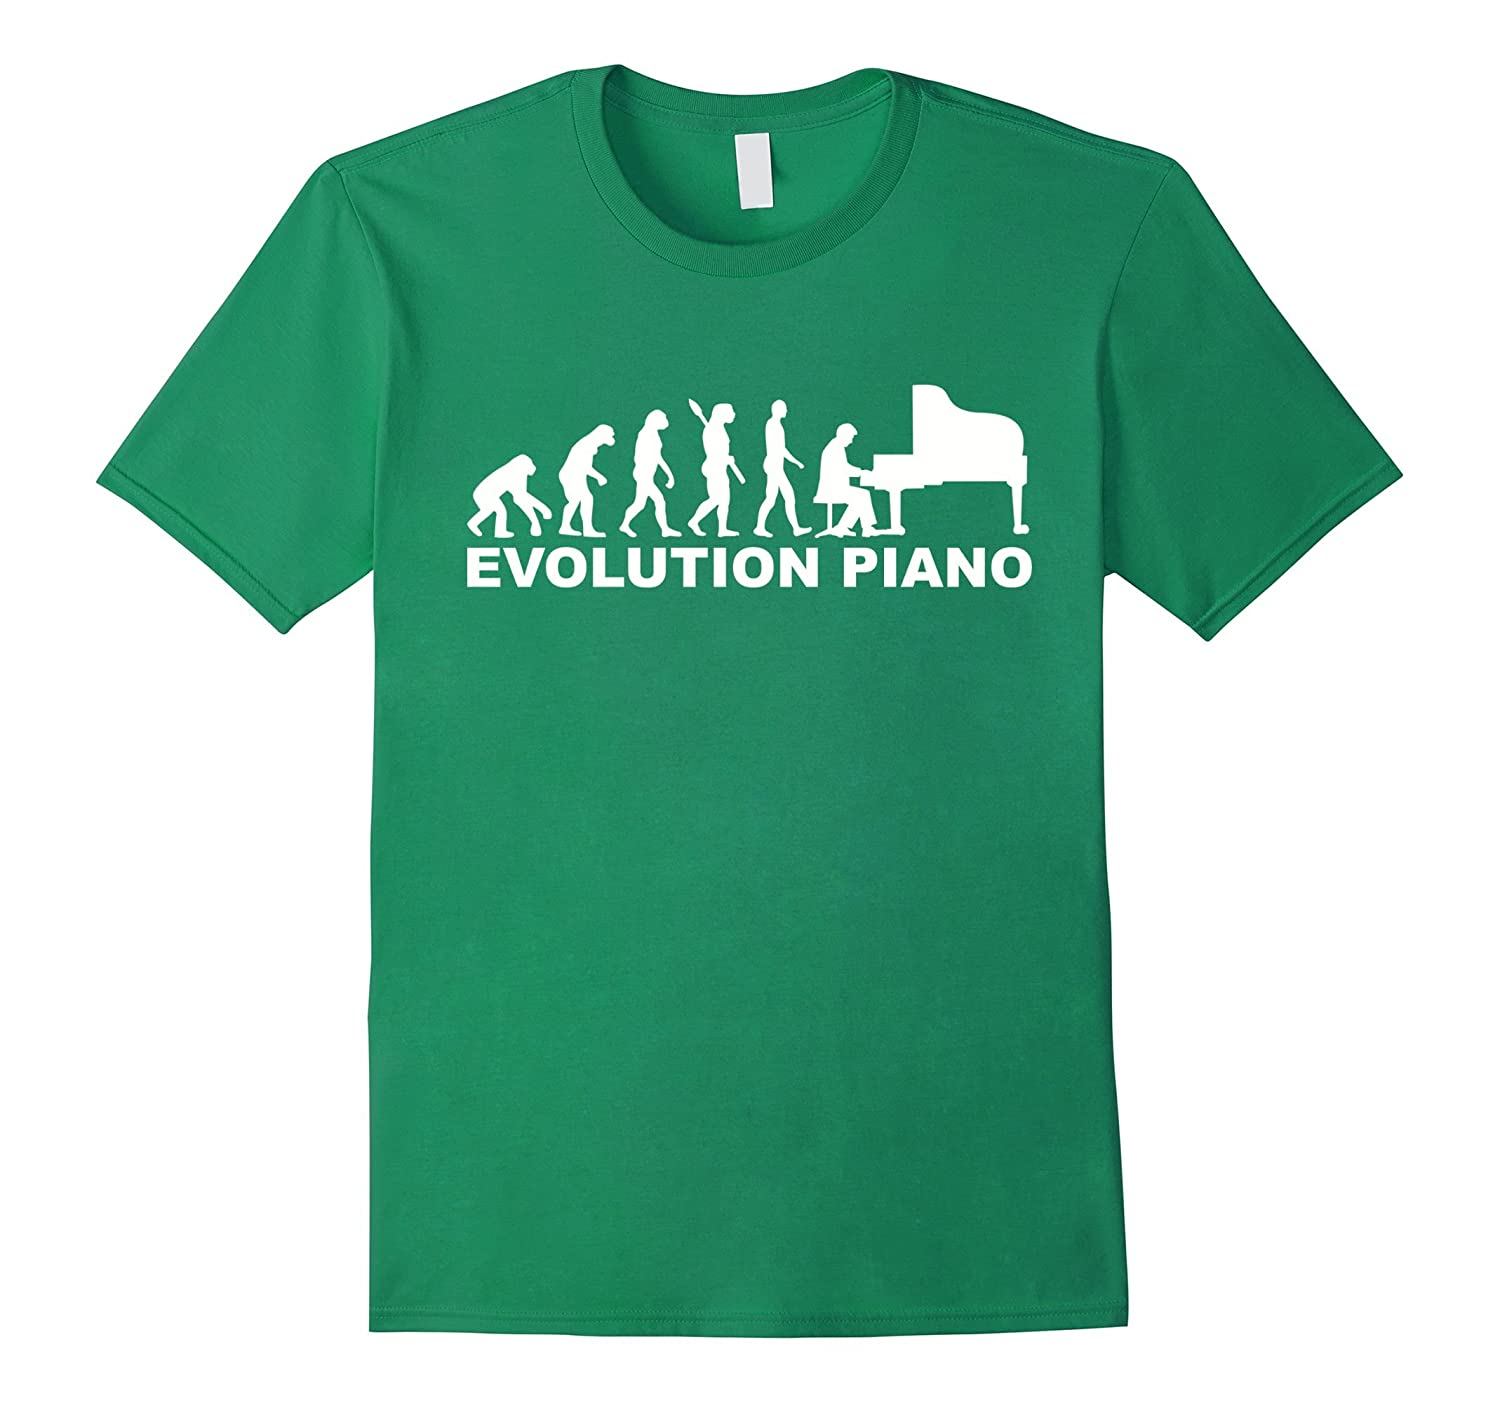 Evolution Grand Piano T Shirt Goatstee